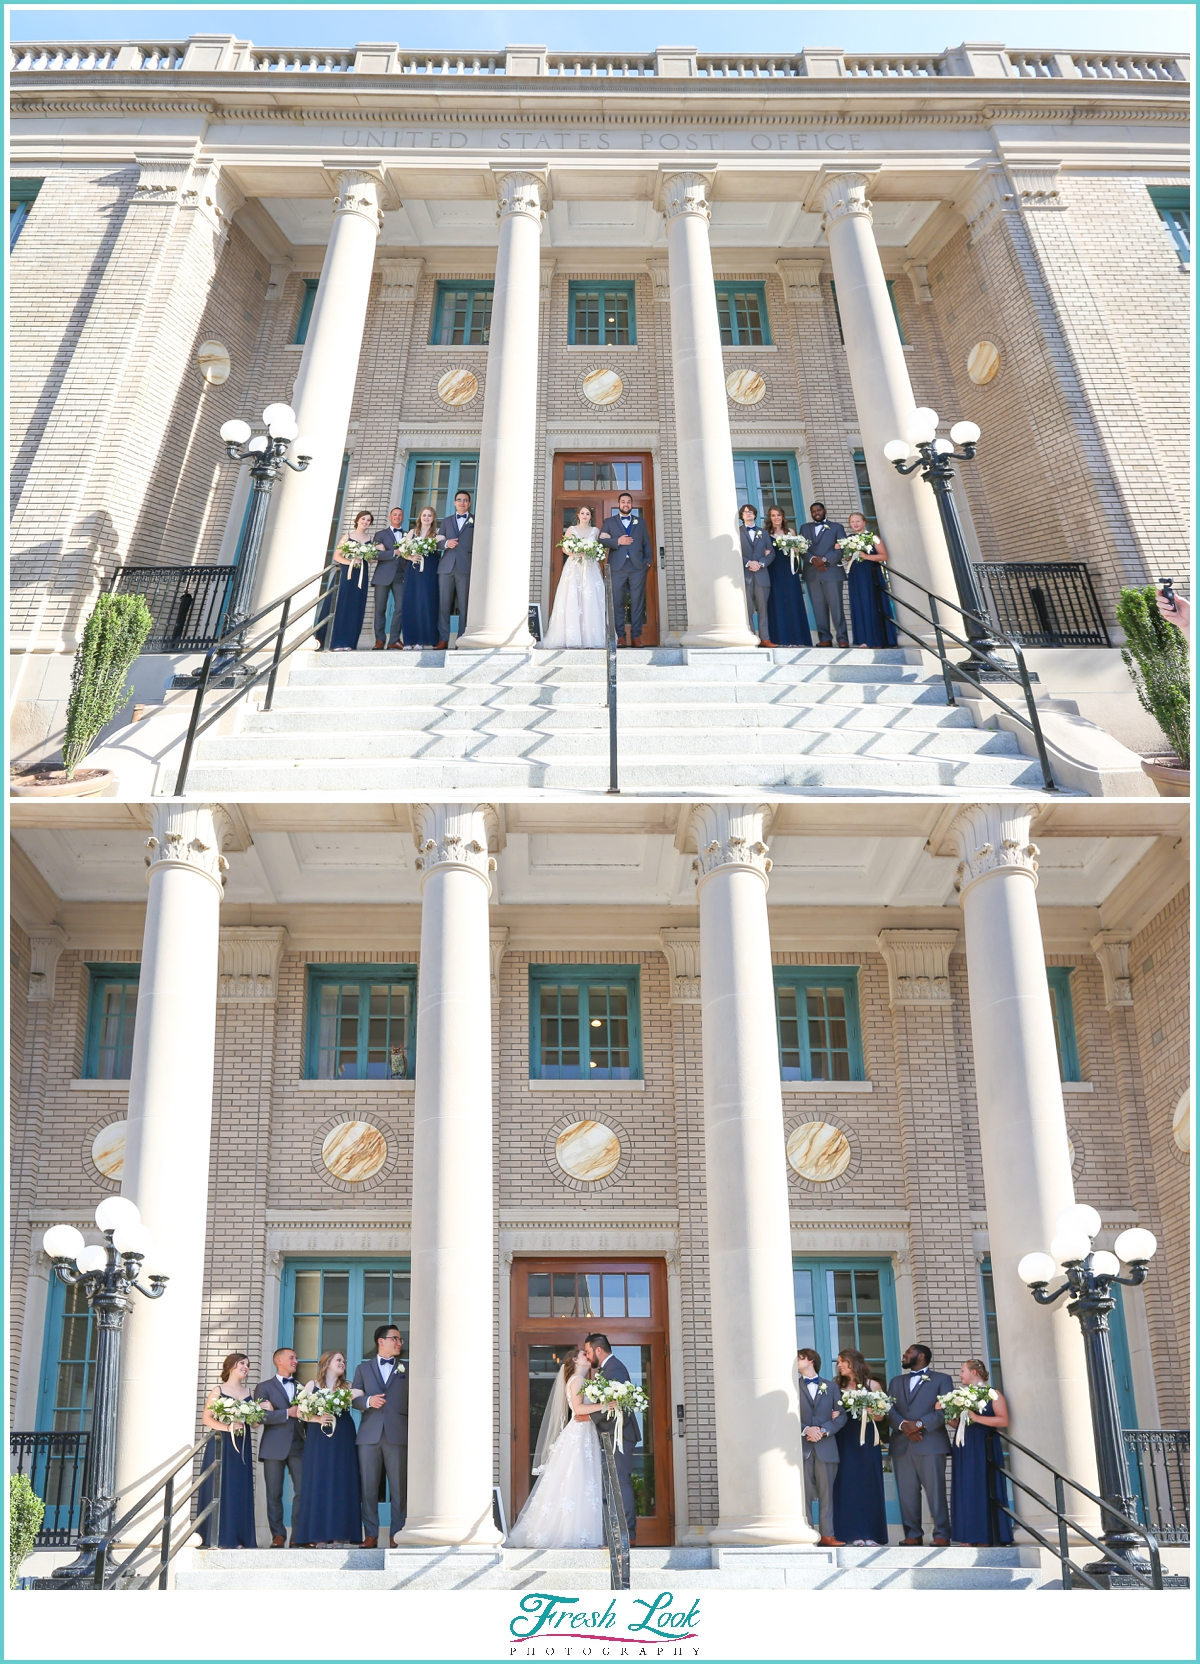 Historic Post Office wedding party photos